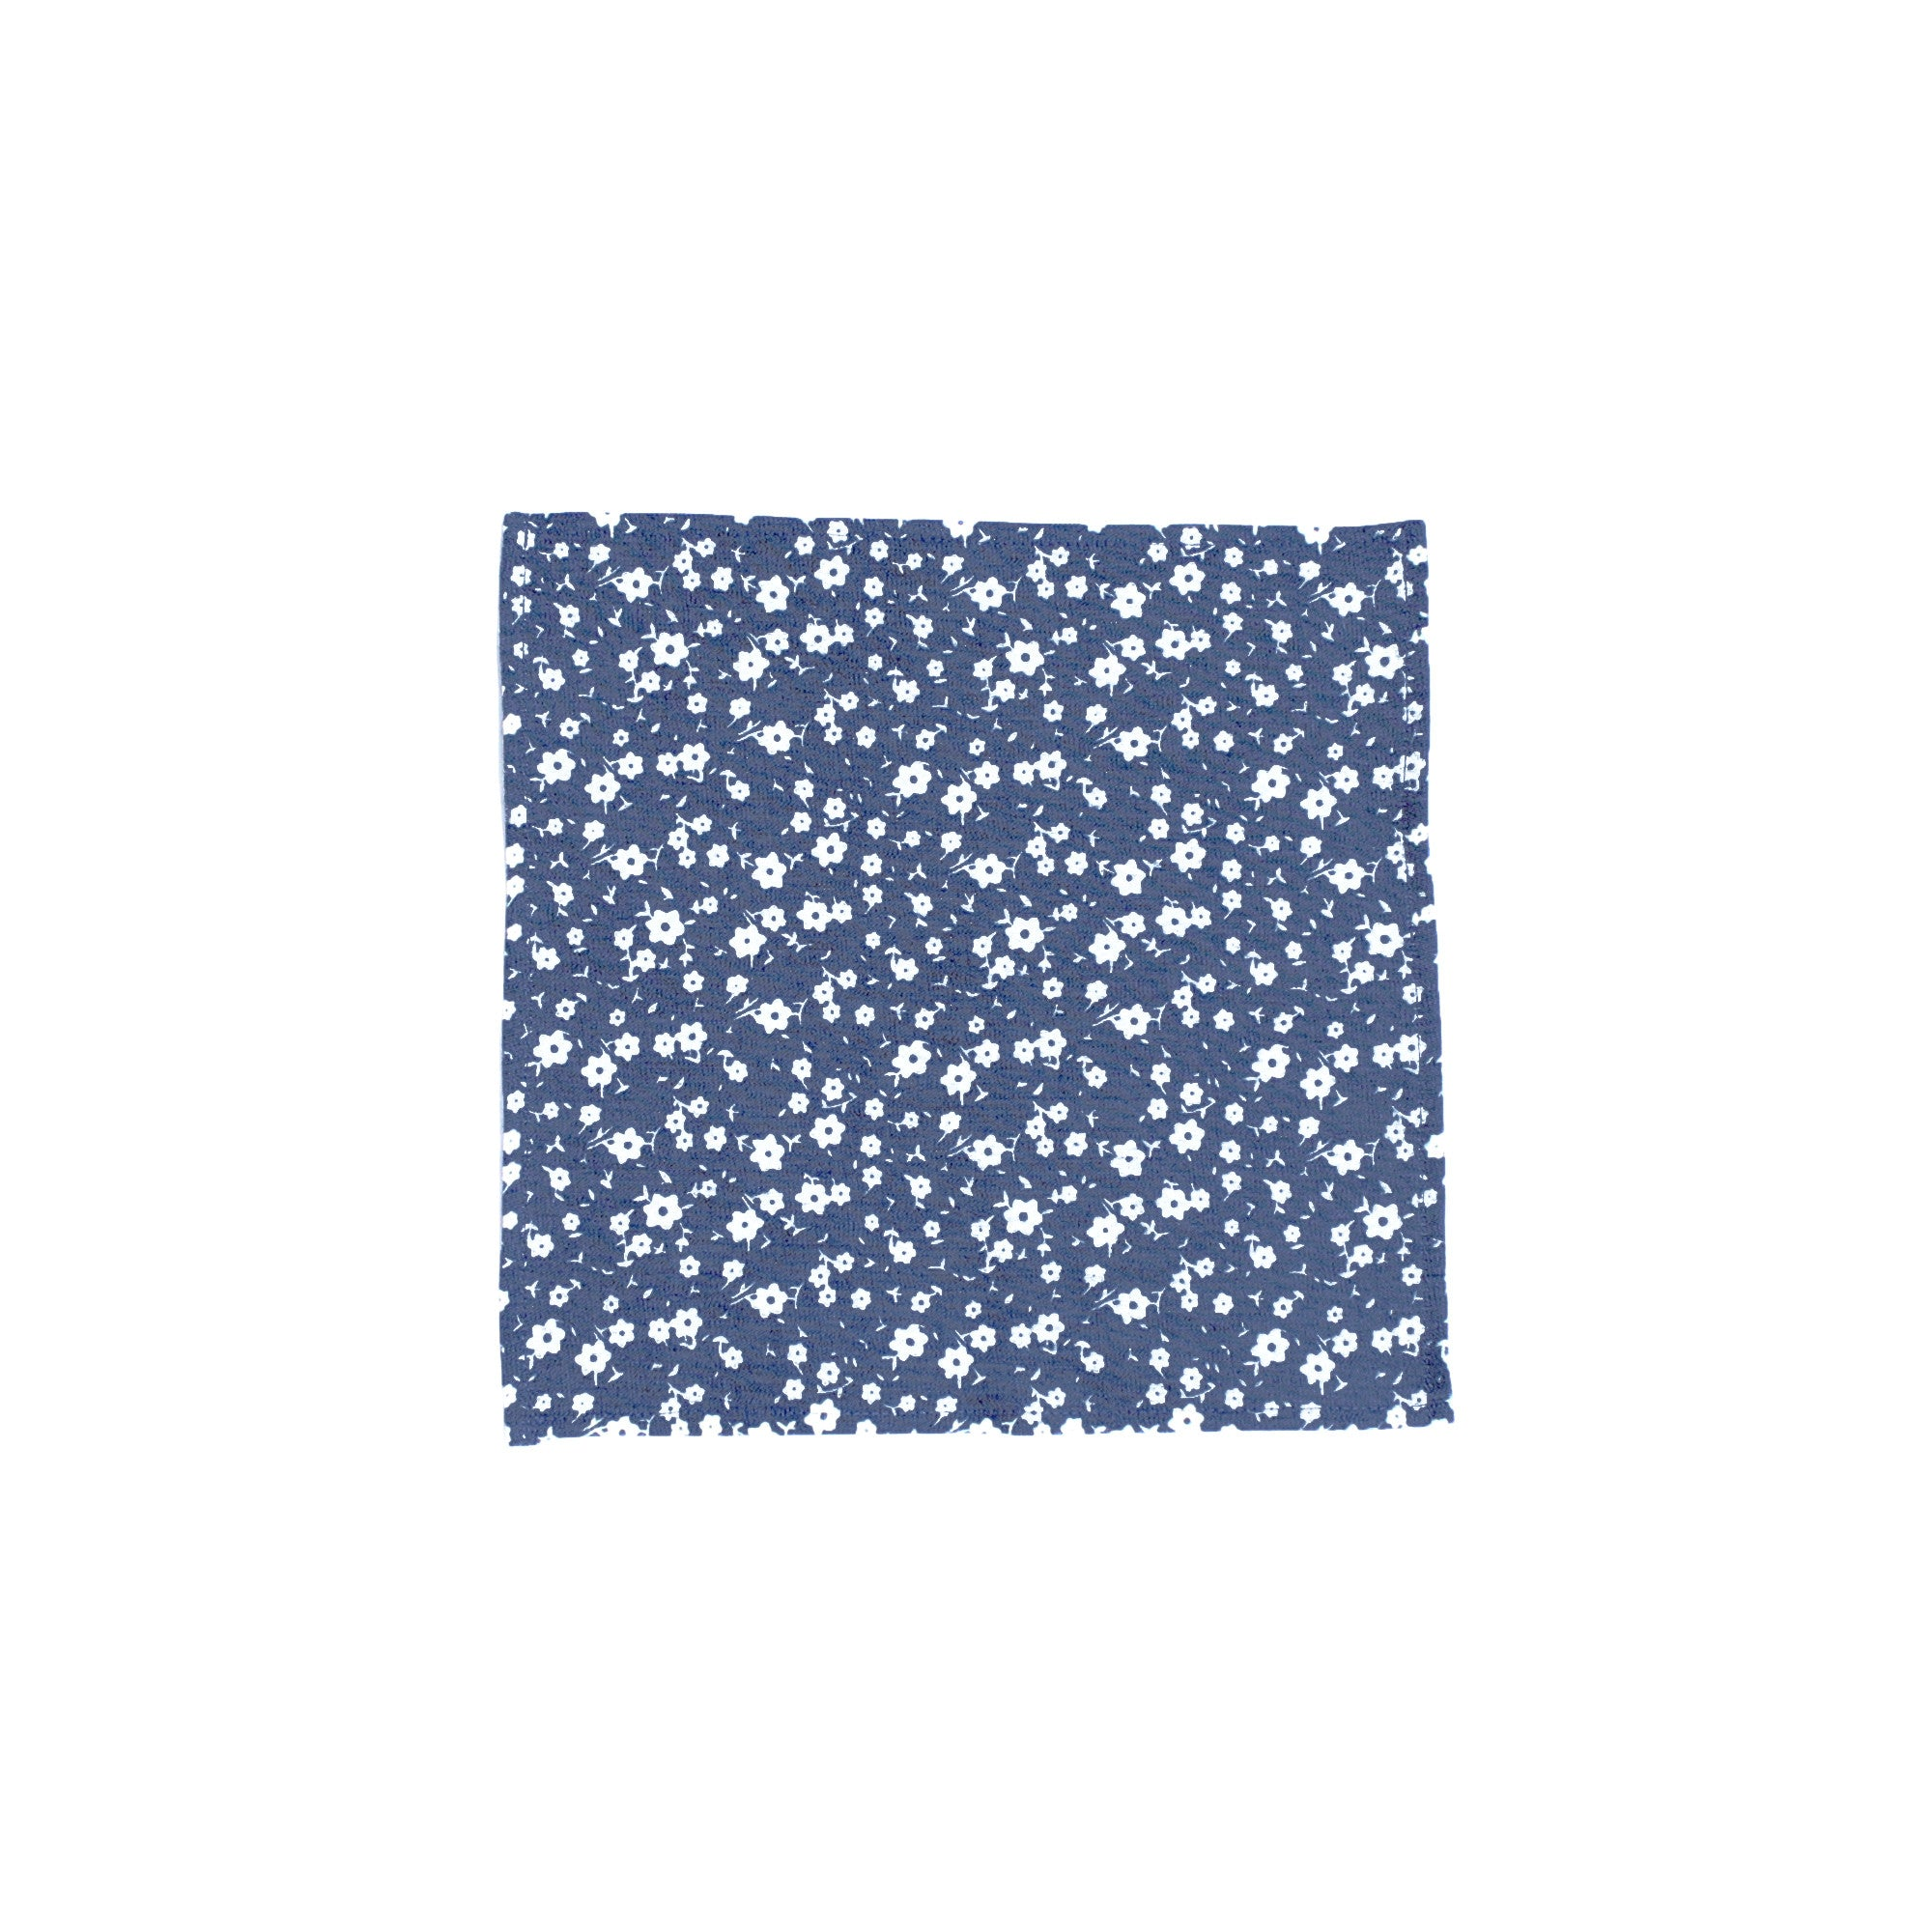 Indigo Floral Pocket Square - Clyde Oak Brand - 1